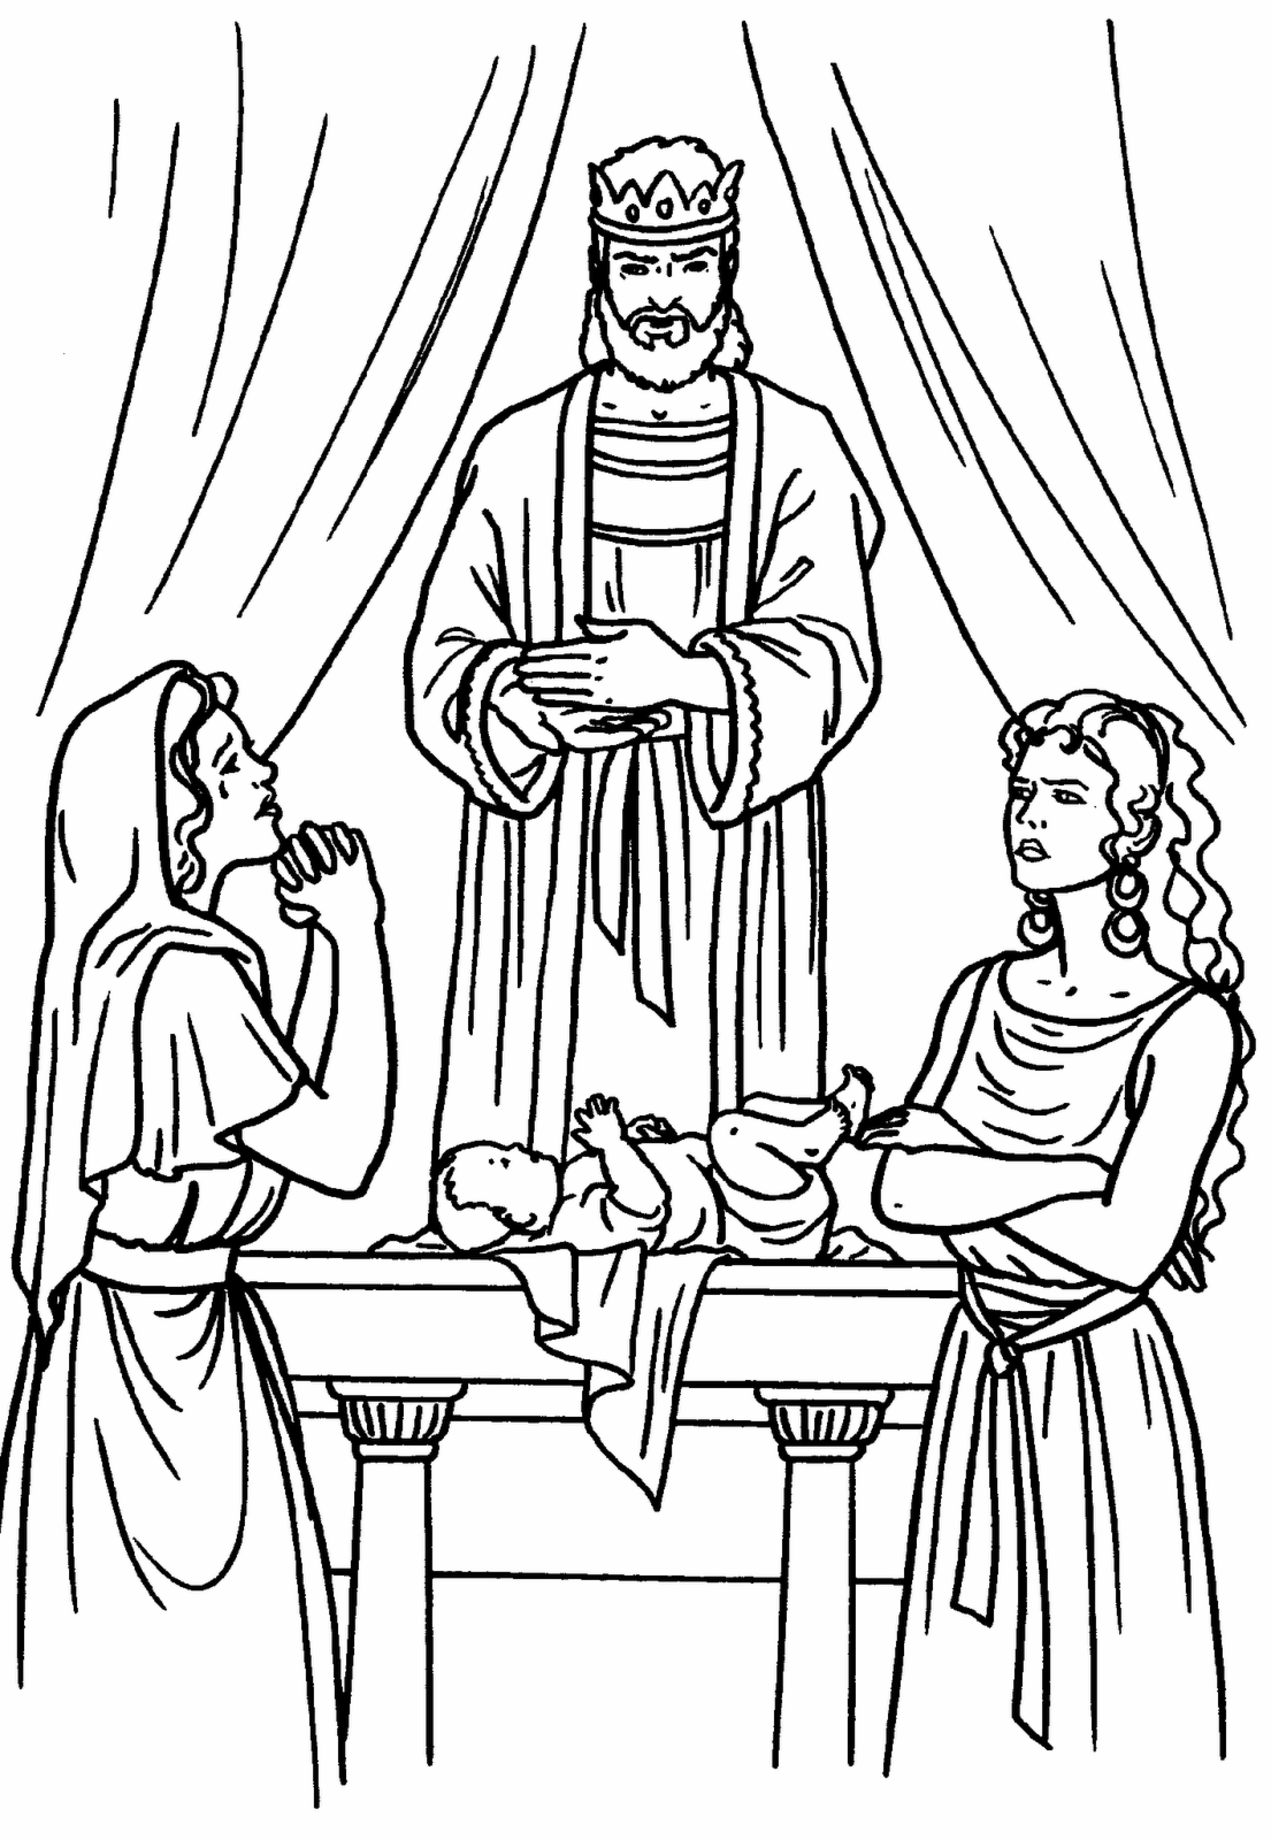 Printable Bible Coloring Pages For Kids - http://fullcoloring.com ...